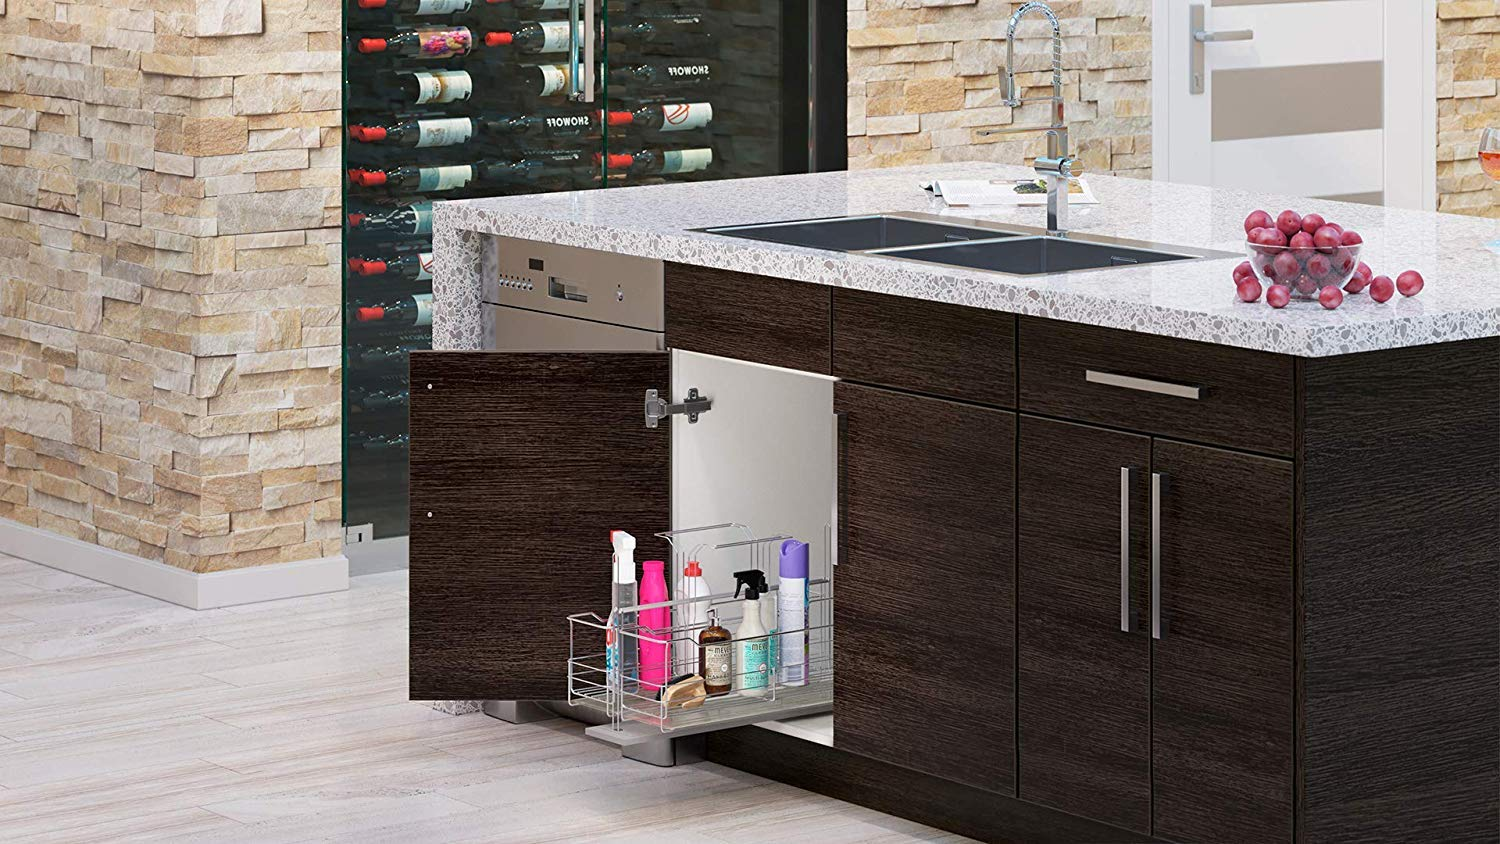 Modern Grey Wood Kitchen Cabinet Textured Woodgrain Frameless Construction Tall Single Oven Built in Cabinet with Two Drawers